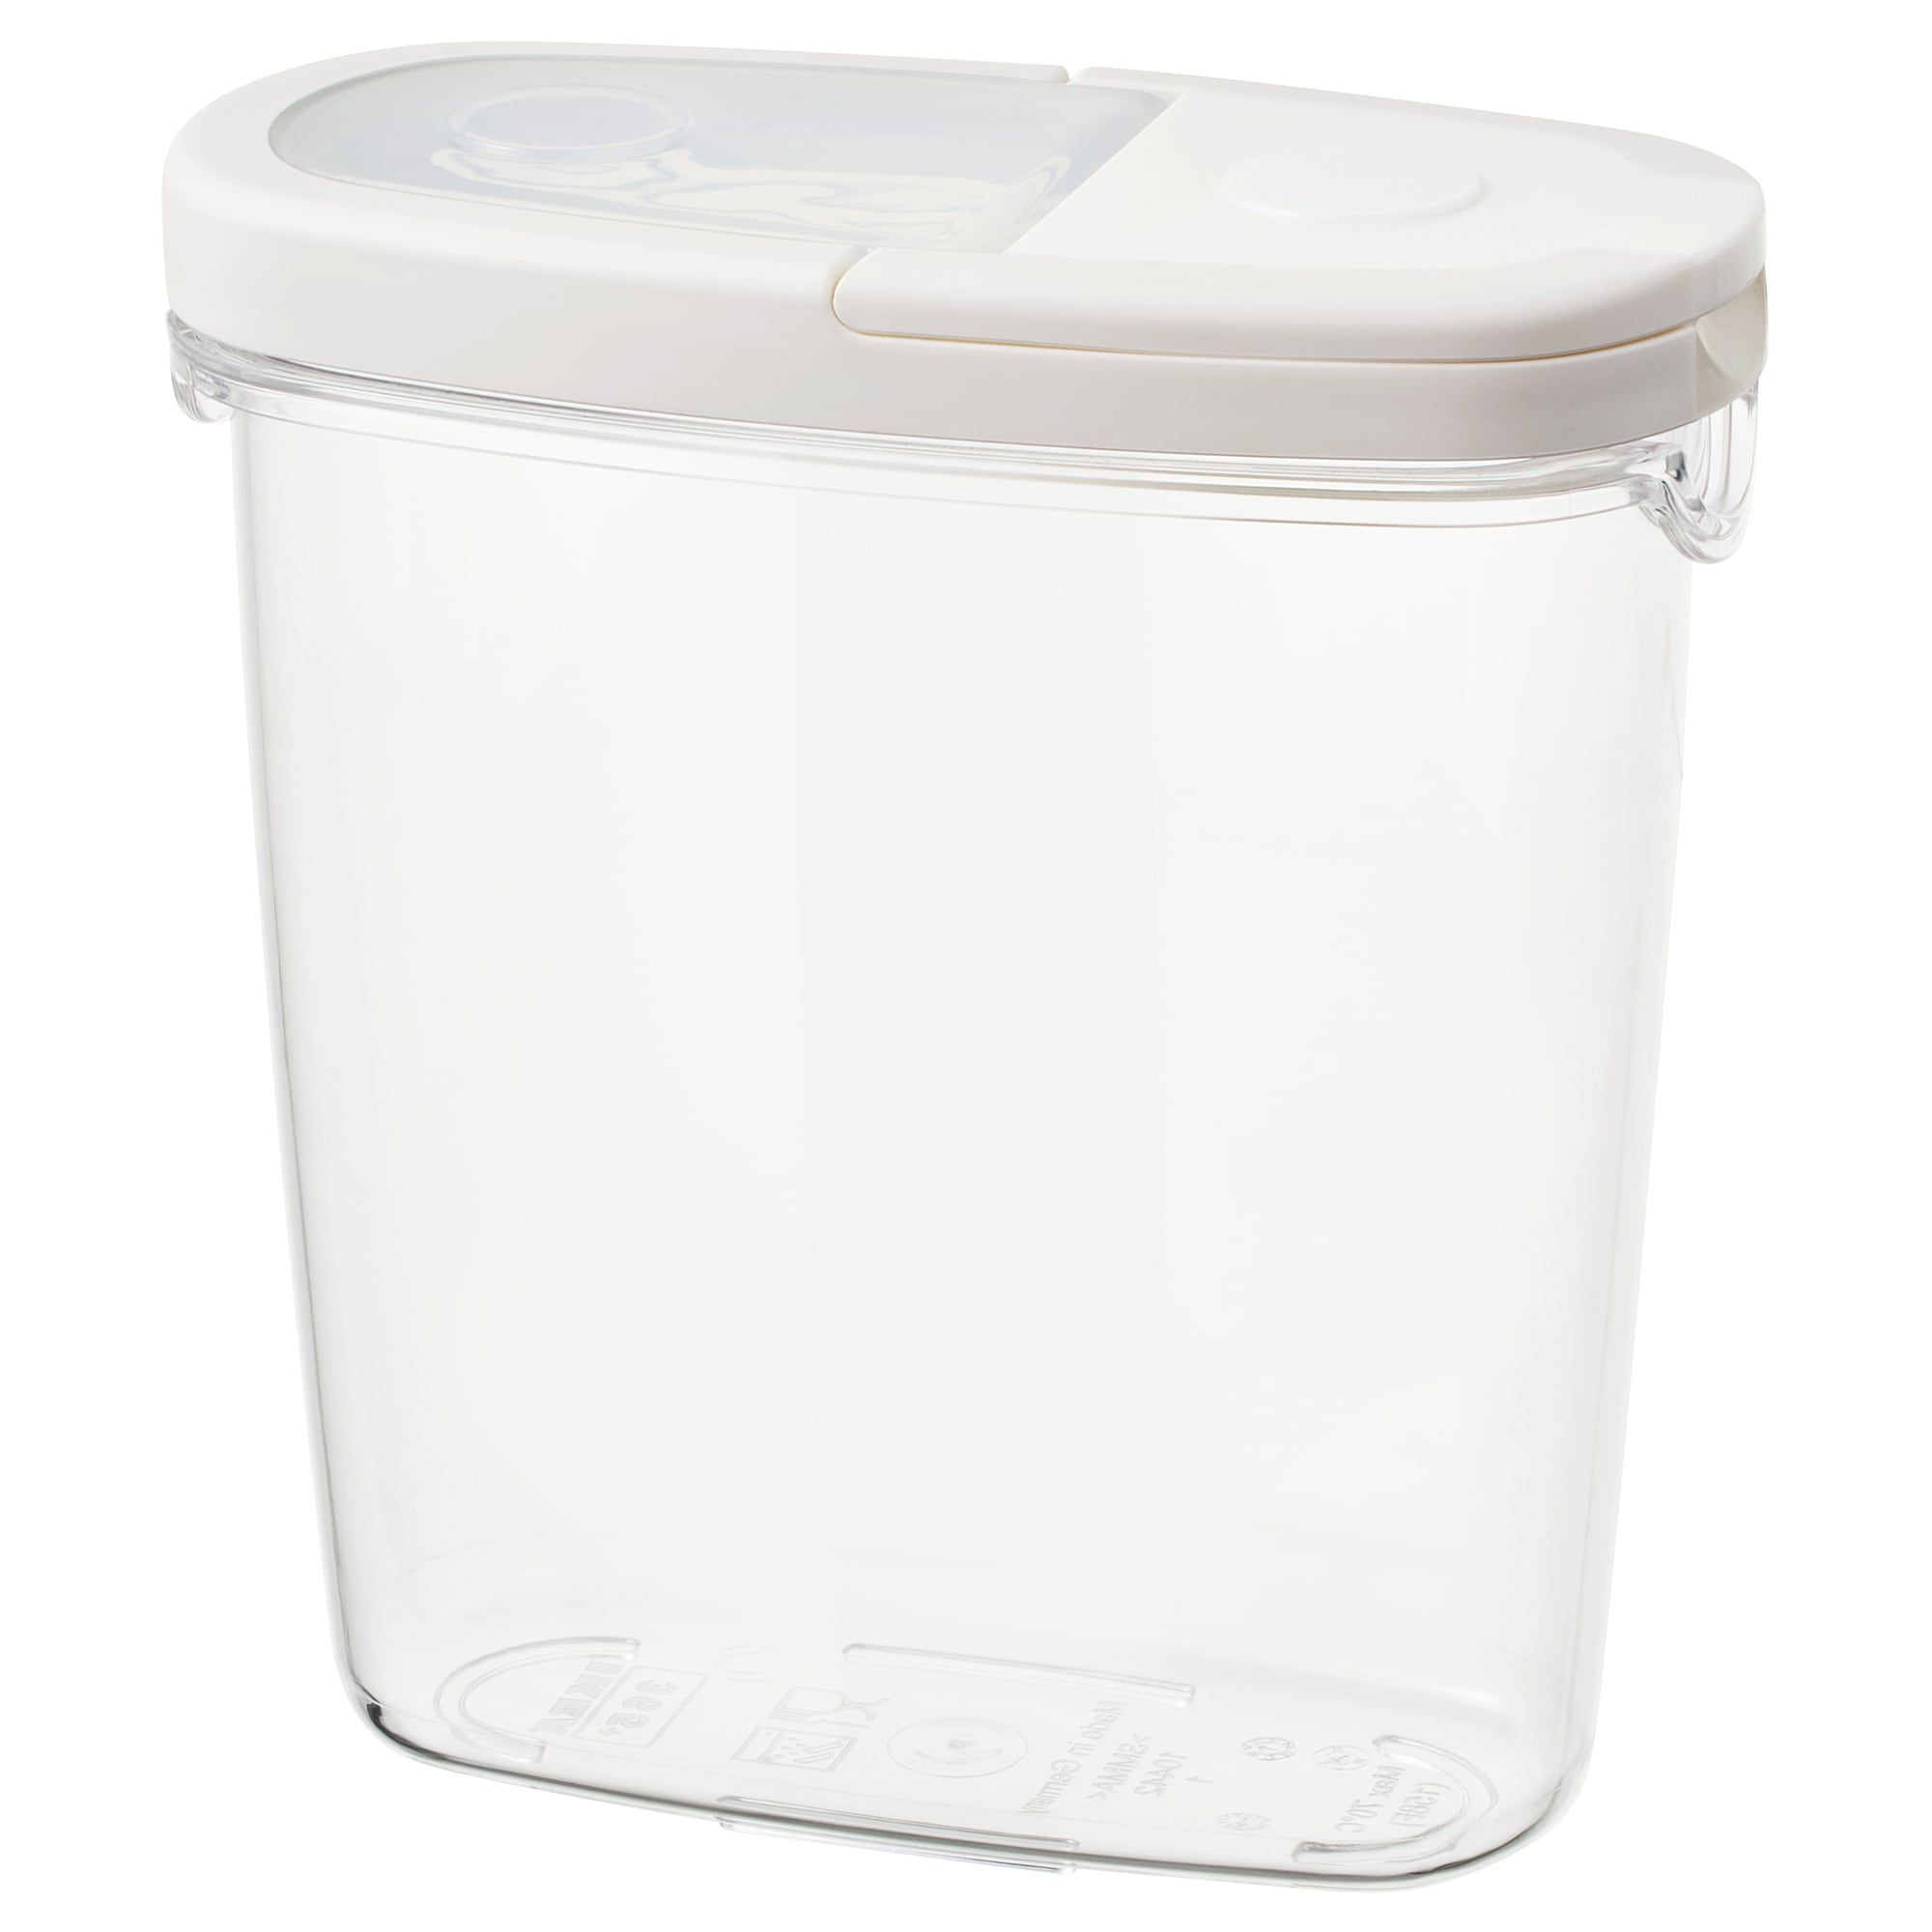 365 Dry Food Jar With Lid Clear White Length 7 Width 3 Volume 44 Oz Learn More In 2020 Ikea Food Storage Food Storage Organization Ikea Kitchen Storage